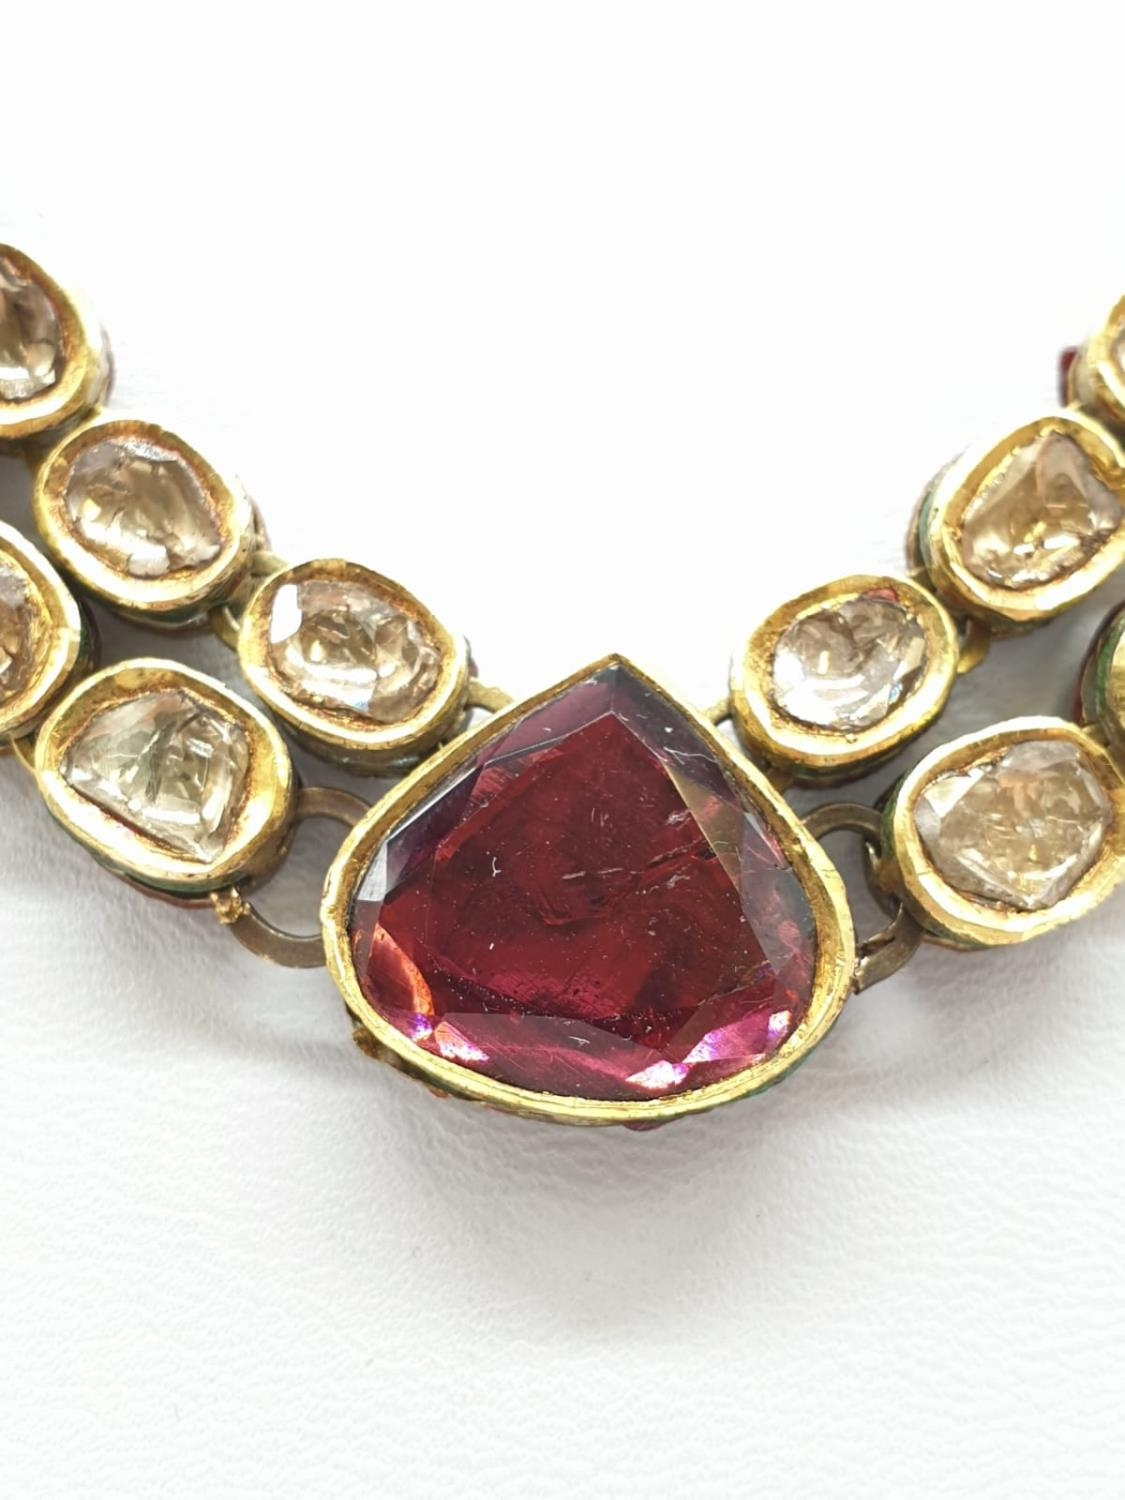 18k Indian set of Ruby and Rose Diamonds NECKLACE (40cm) and EARRINGS. 68g. - Image 8 of 9